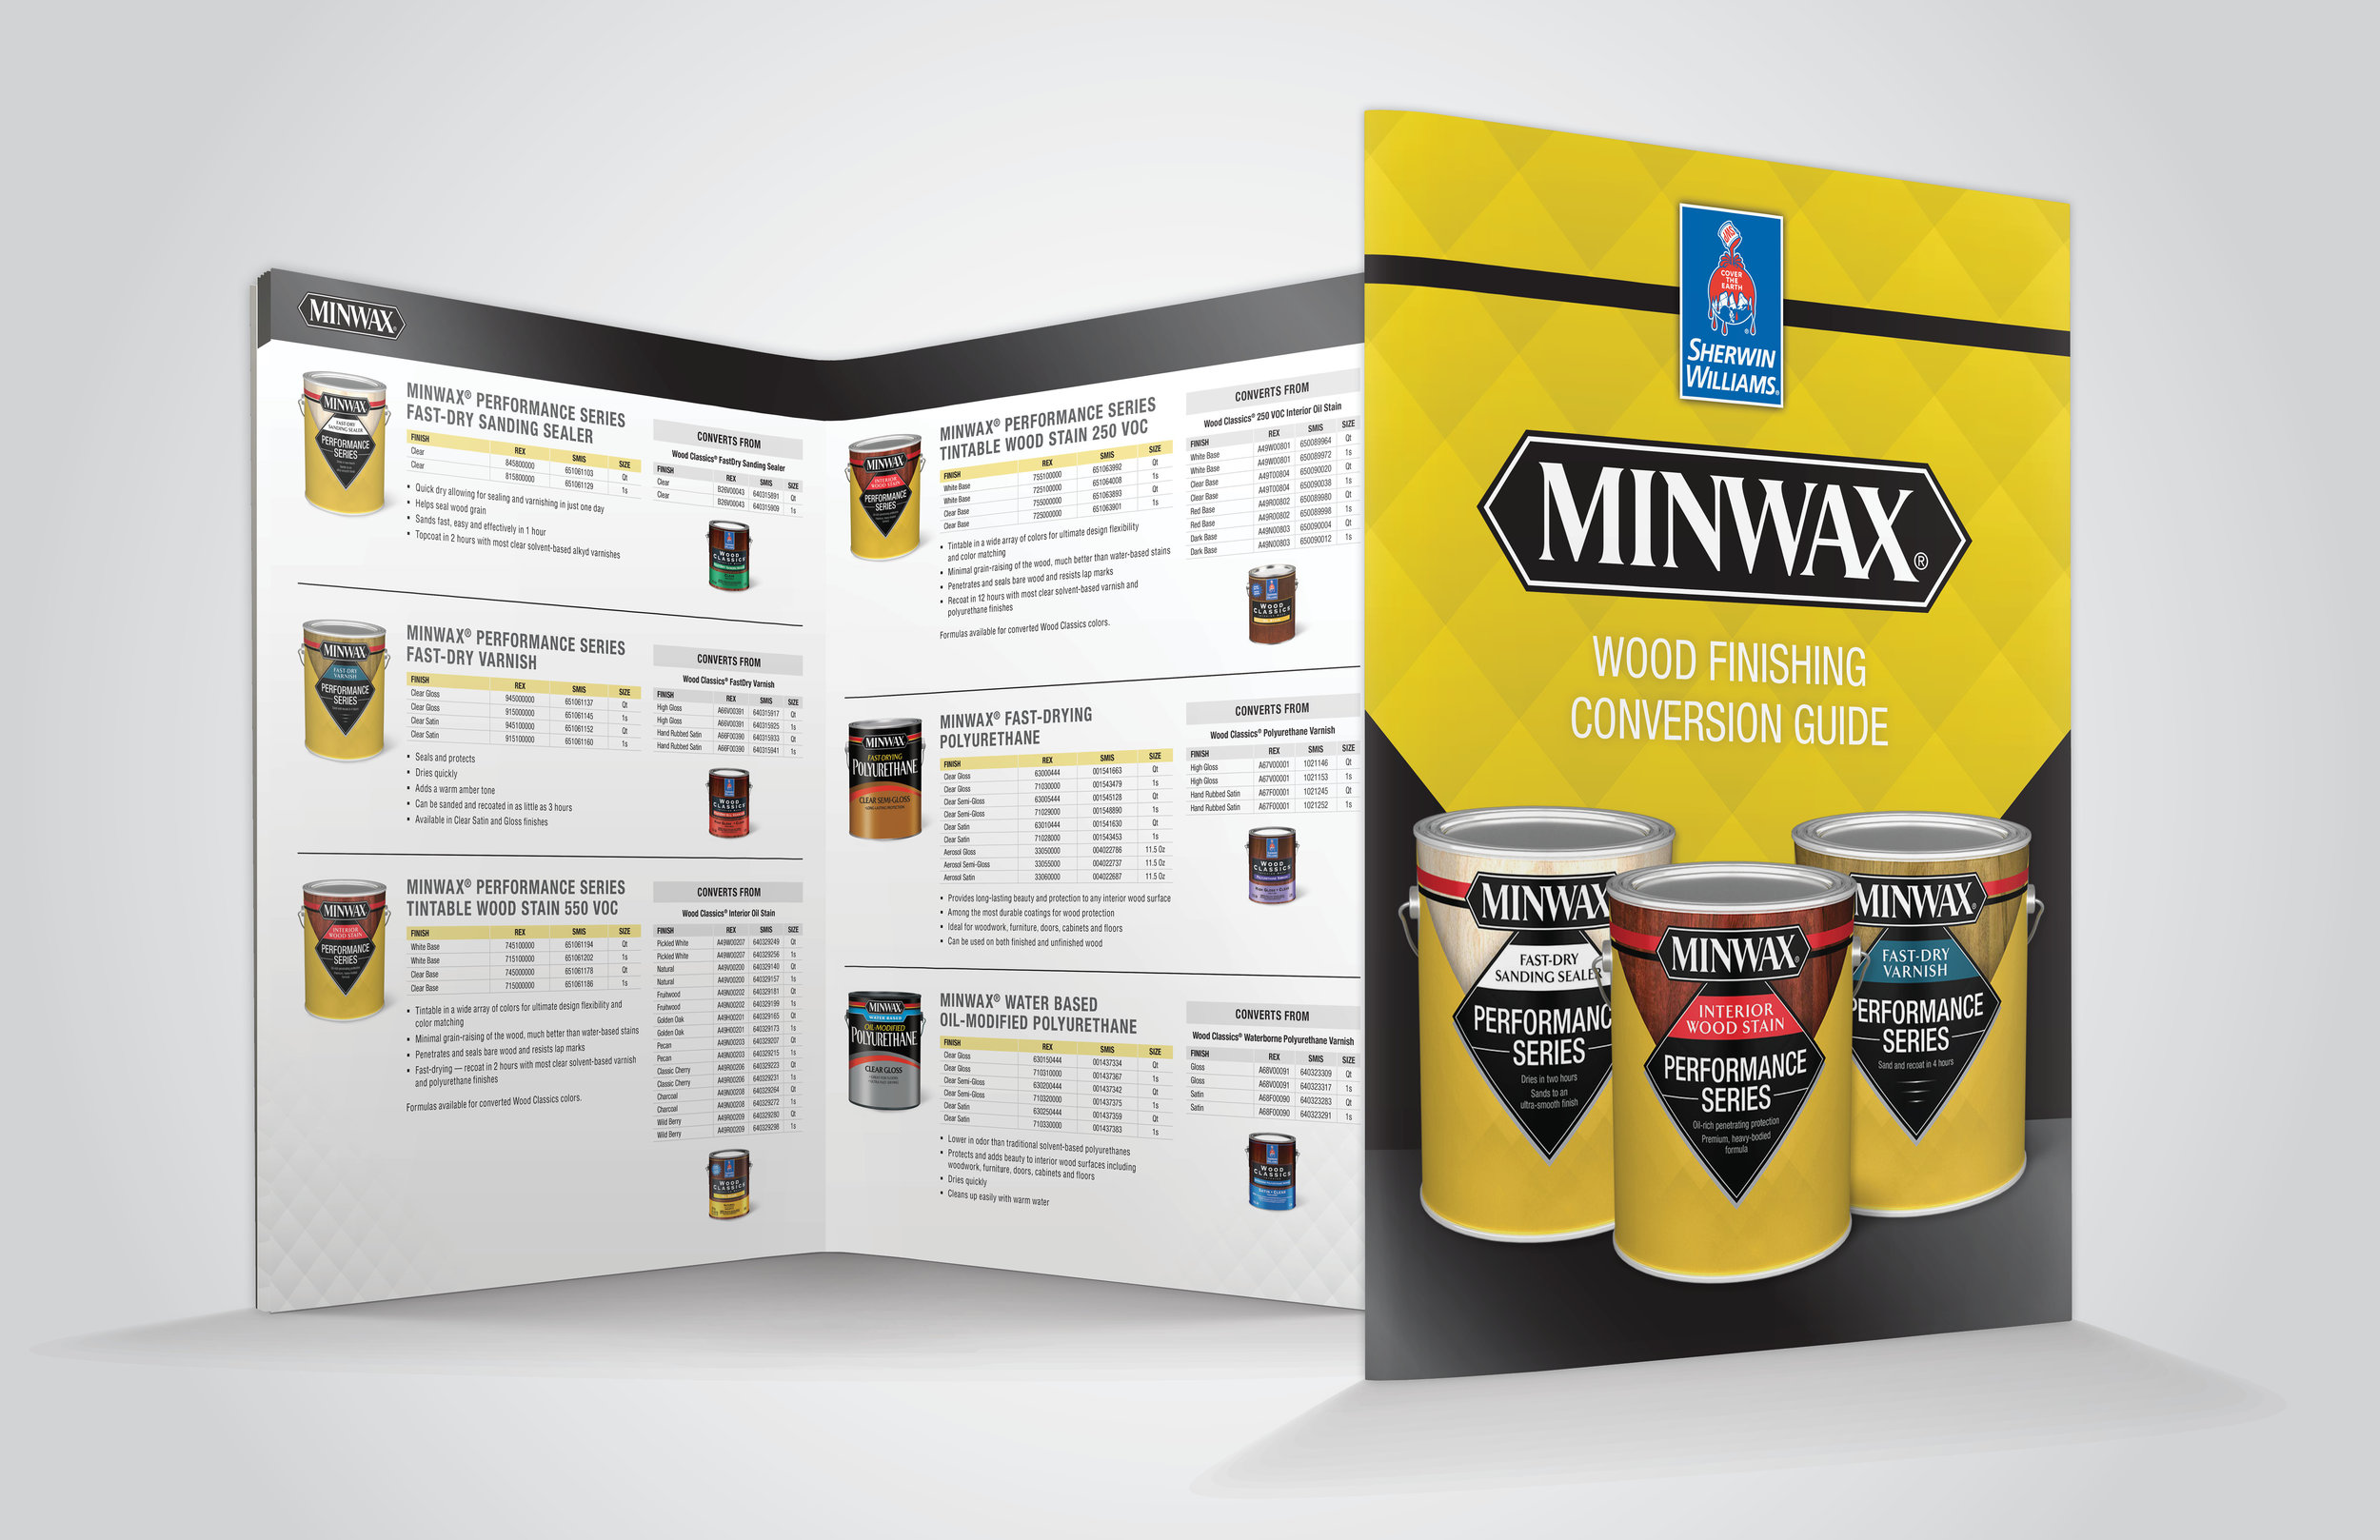 SW Minwax Launch Portfolio Layout 1.jpg